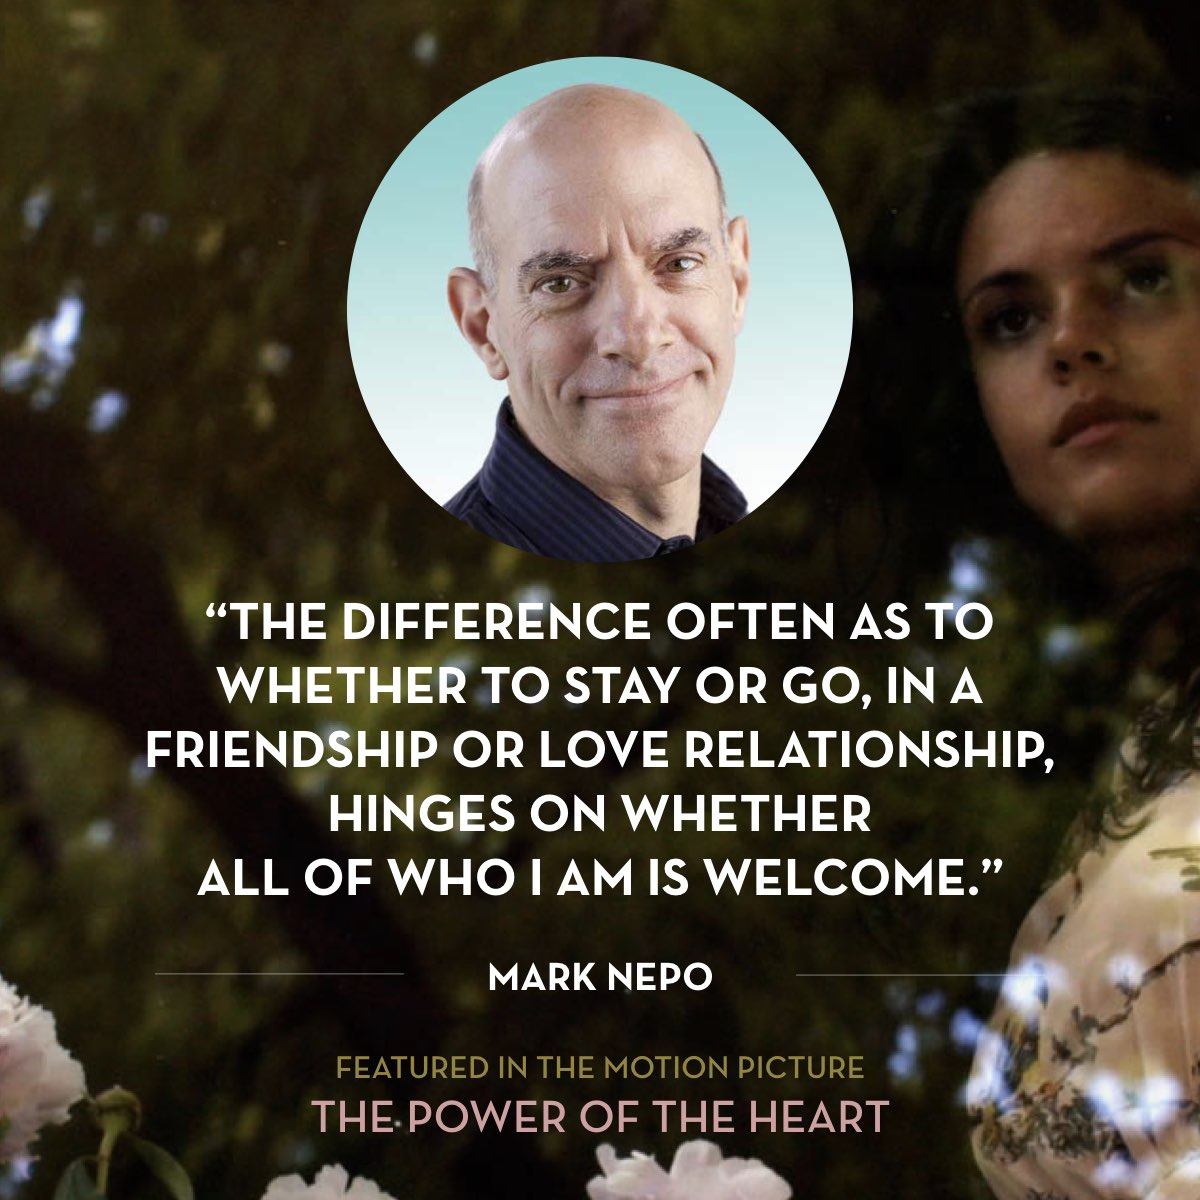 The difference often as to whether to stay or go, in a friendship or love relationship, hinges on whether all of who I am is welcome. -  Mark Nepo